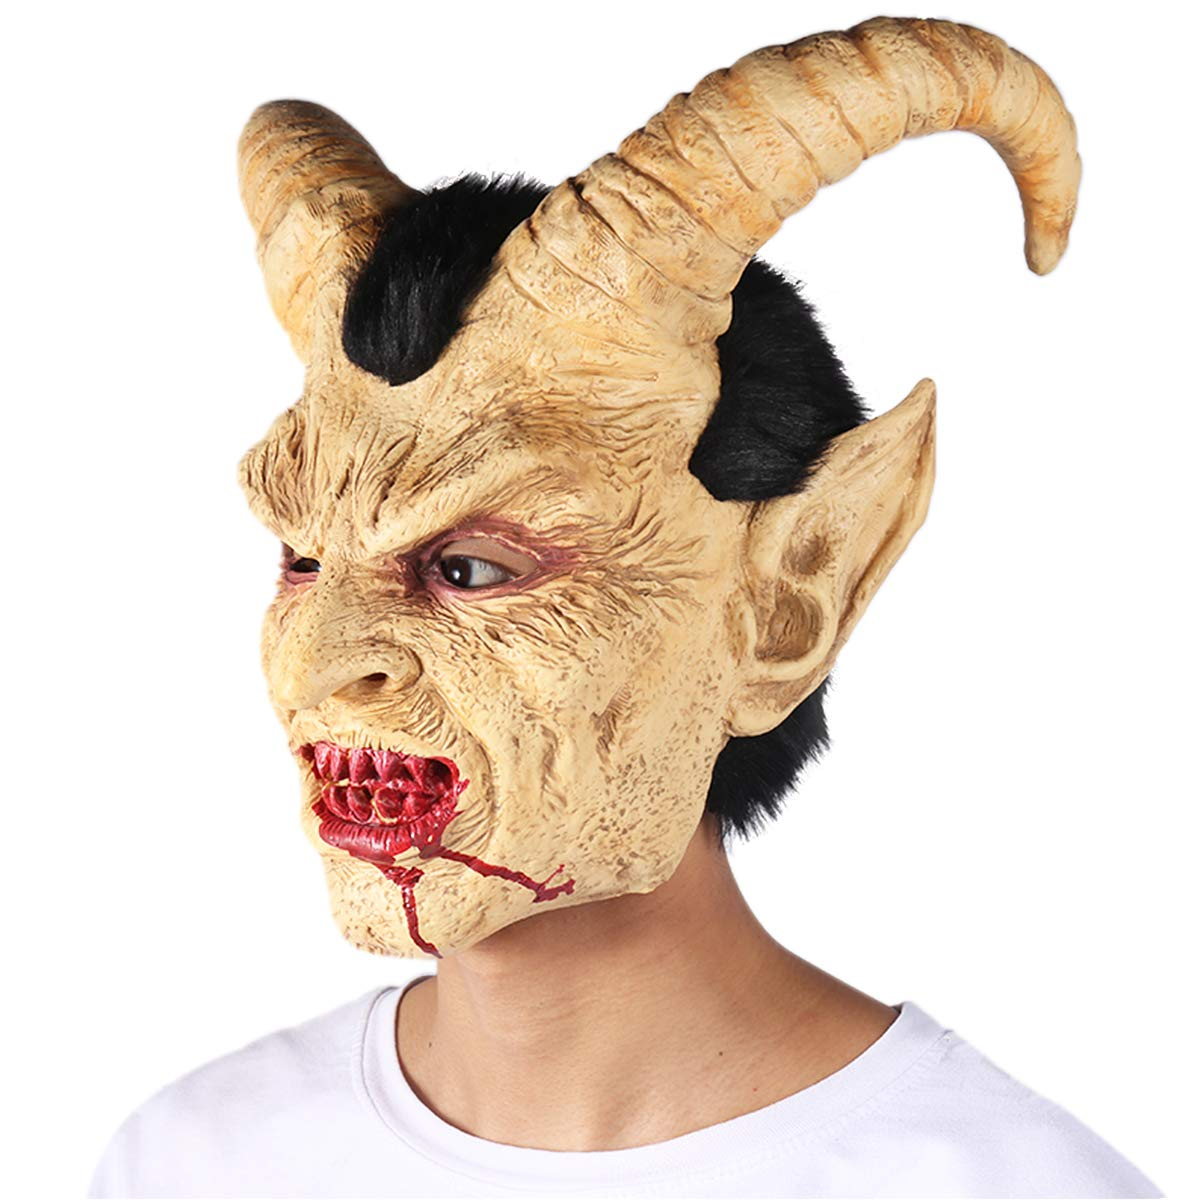 FITMAKER Halloween Novelty Horror Mask Costume Party Cosplay Lucifer Head Mask for Halloween